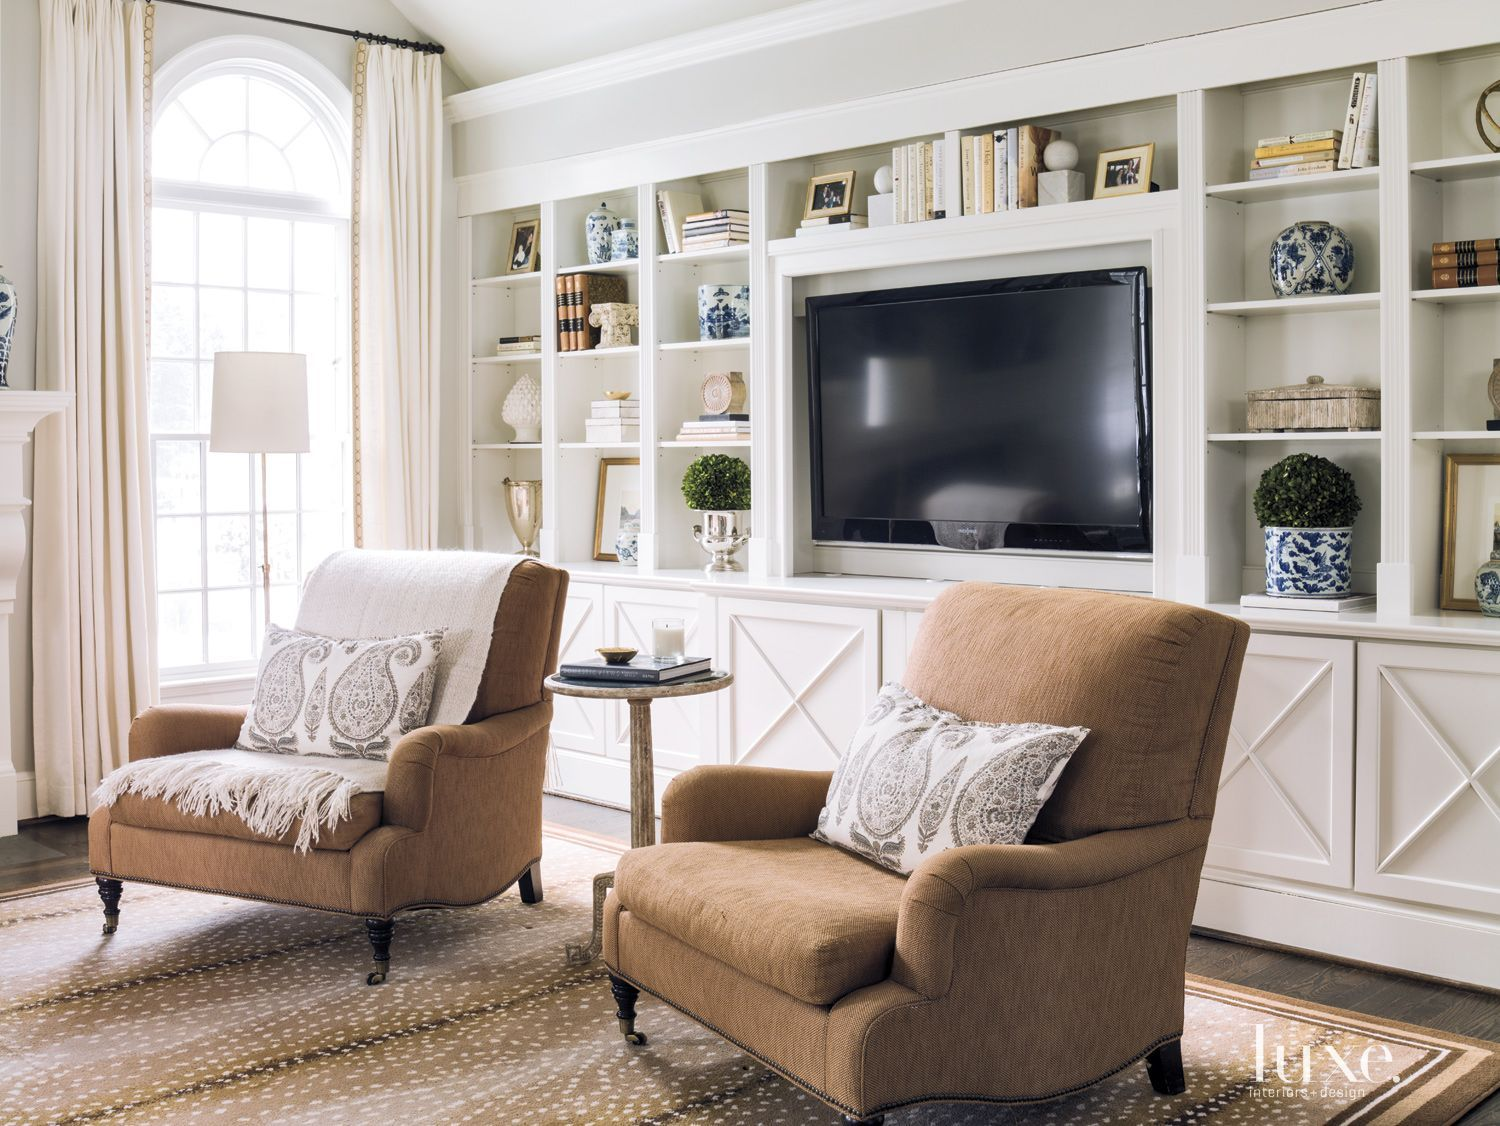 Contemporary Cream Family Room Club Chairs Living Room Built Ins Family Room Design Family Room